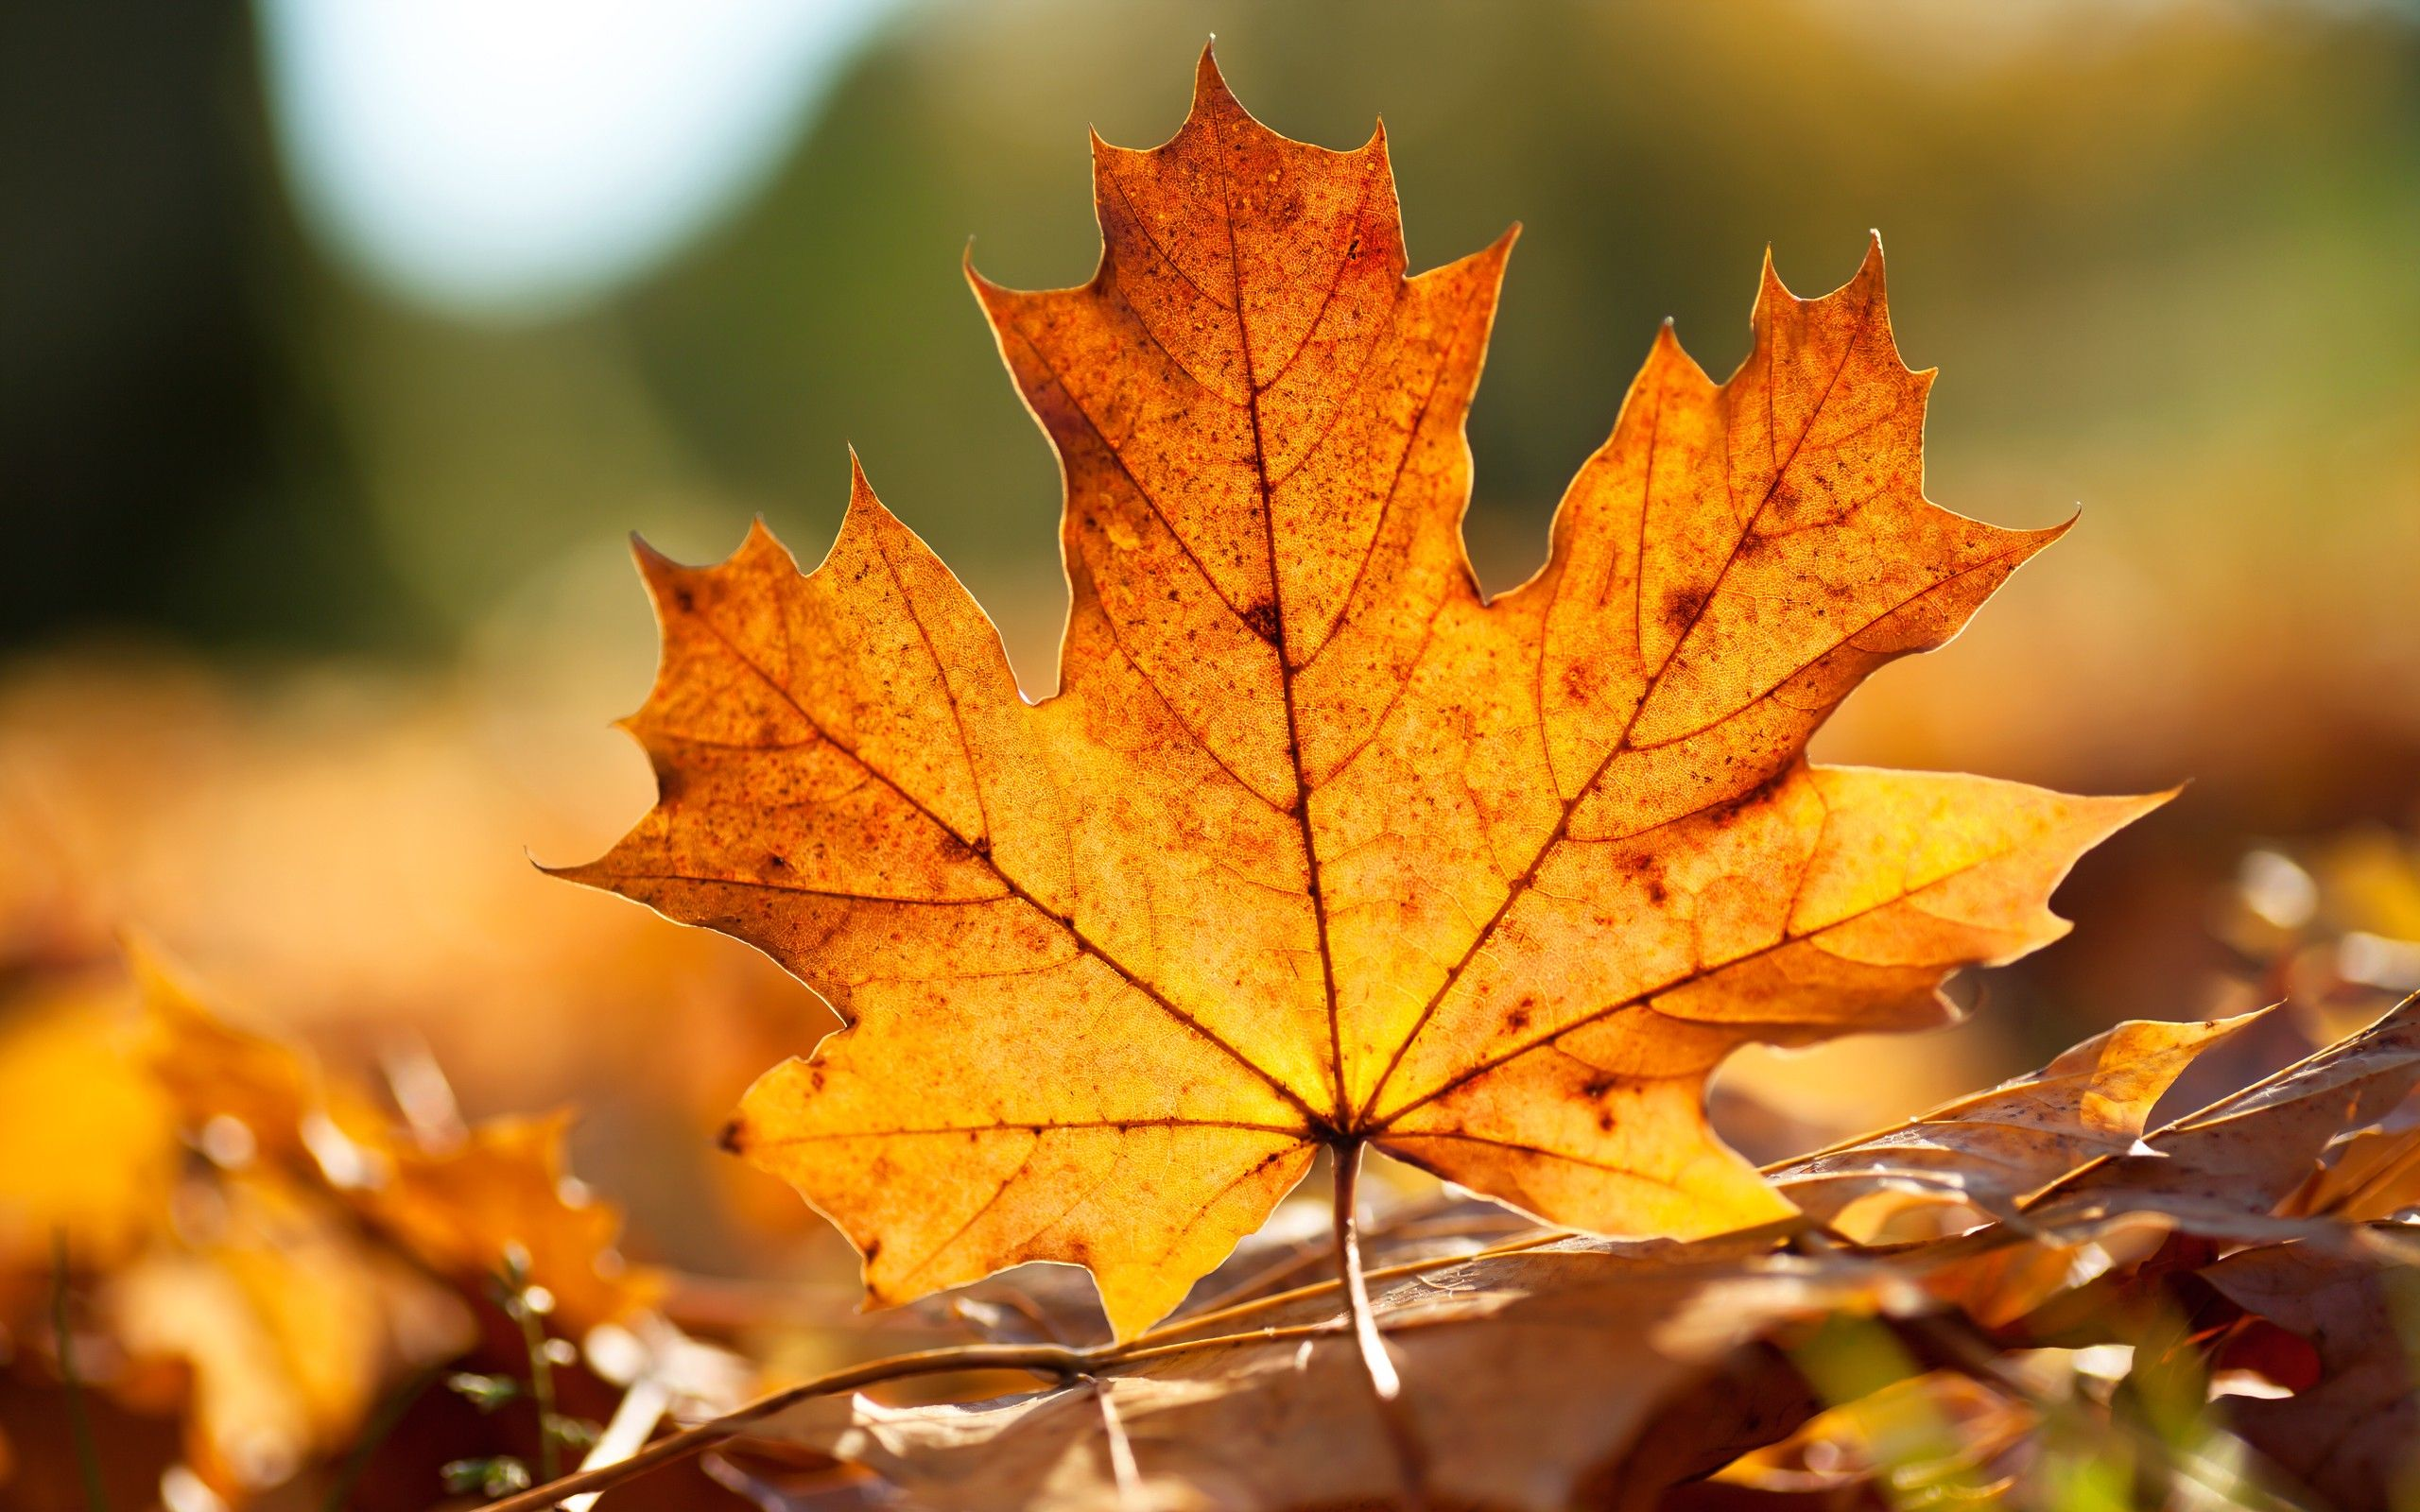 Autumn Leaves Carpet Wallpaper Autumn Nature Wallpapers in jpg